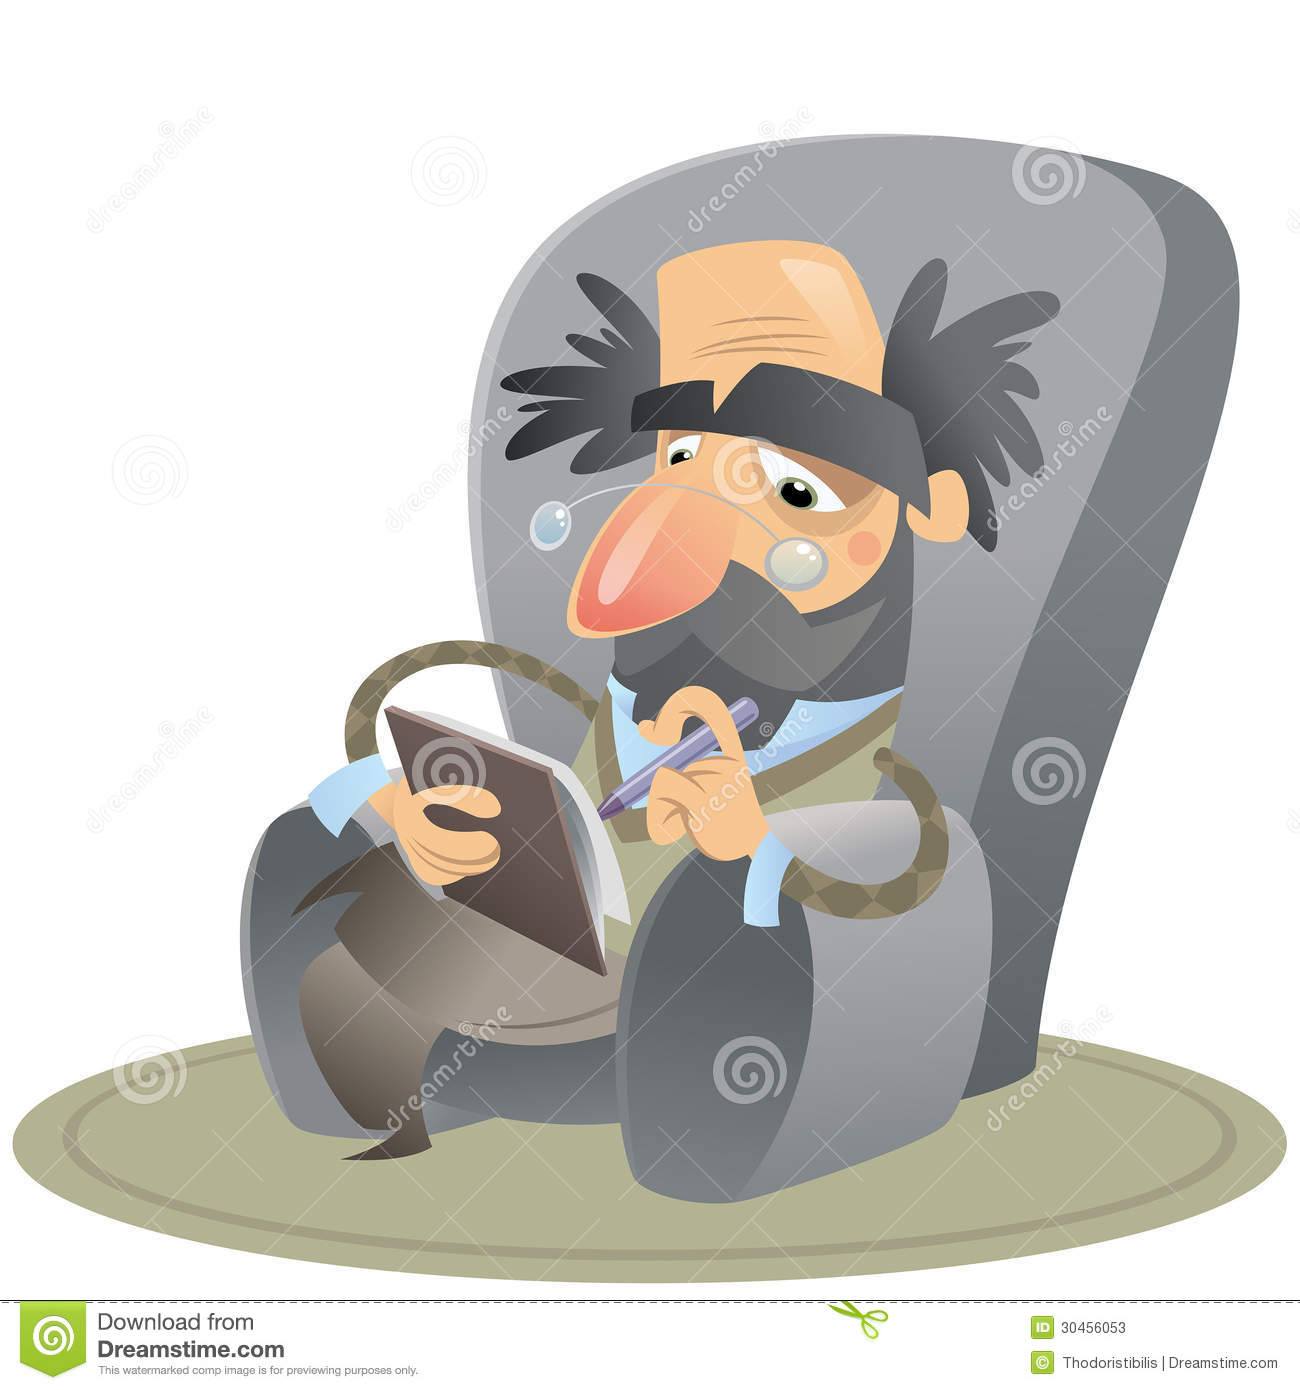 Cartoon Psychologist Sitting On An Arm Chair Keeping Notes